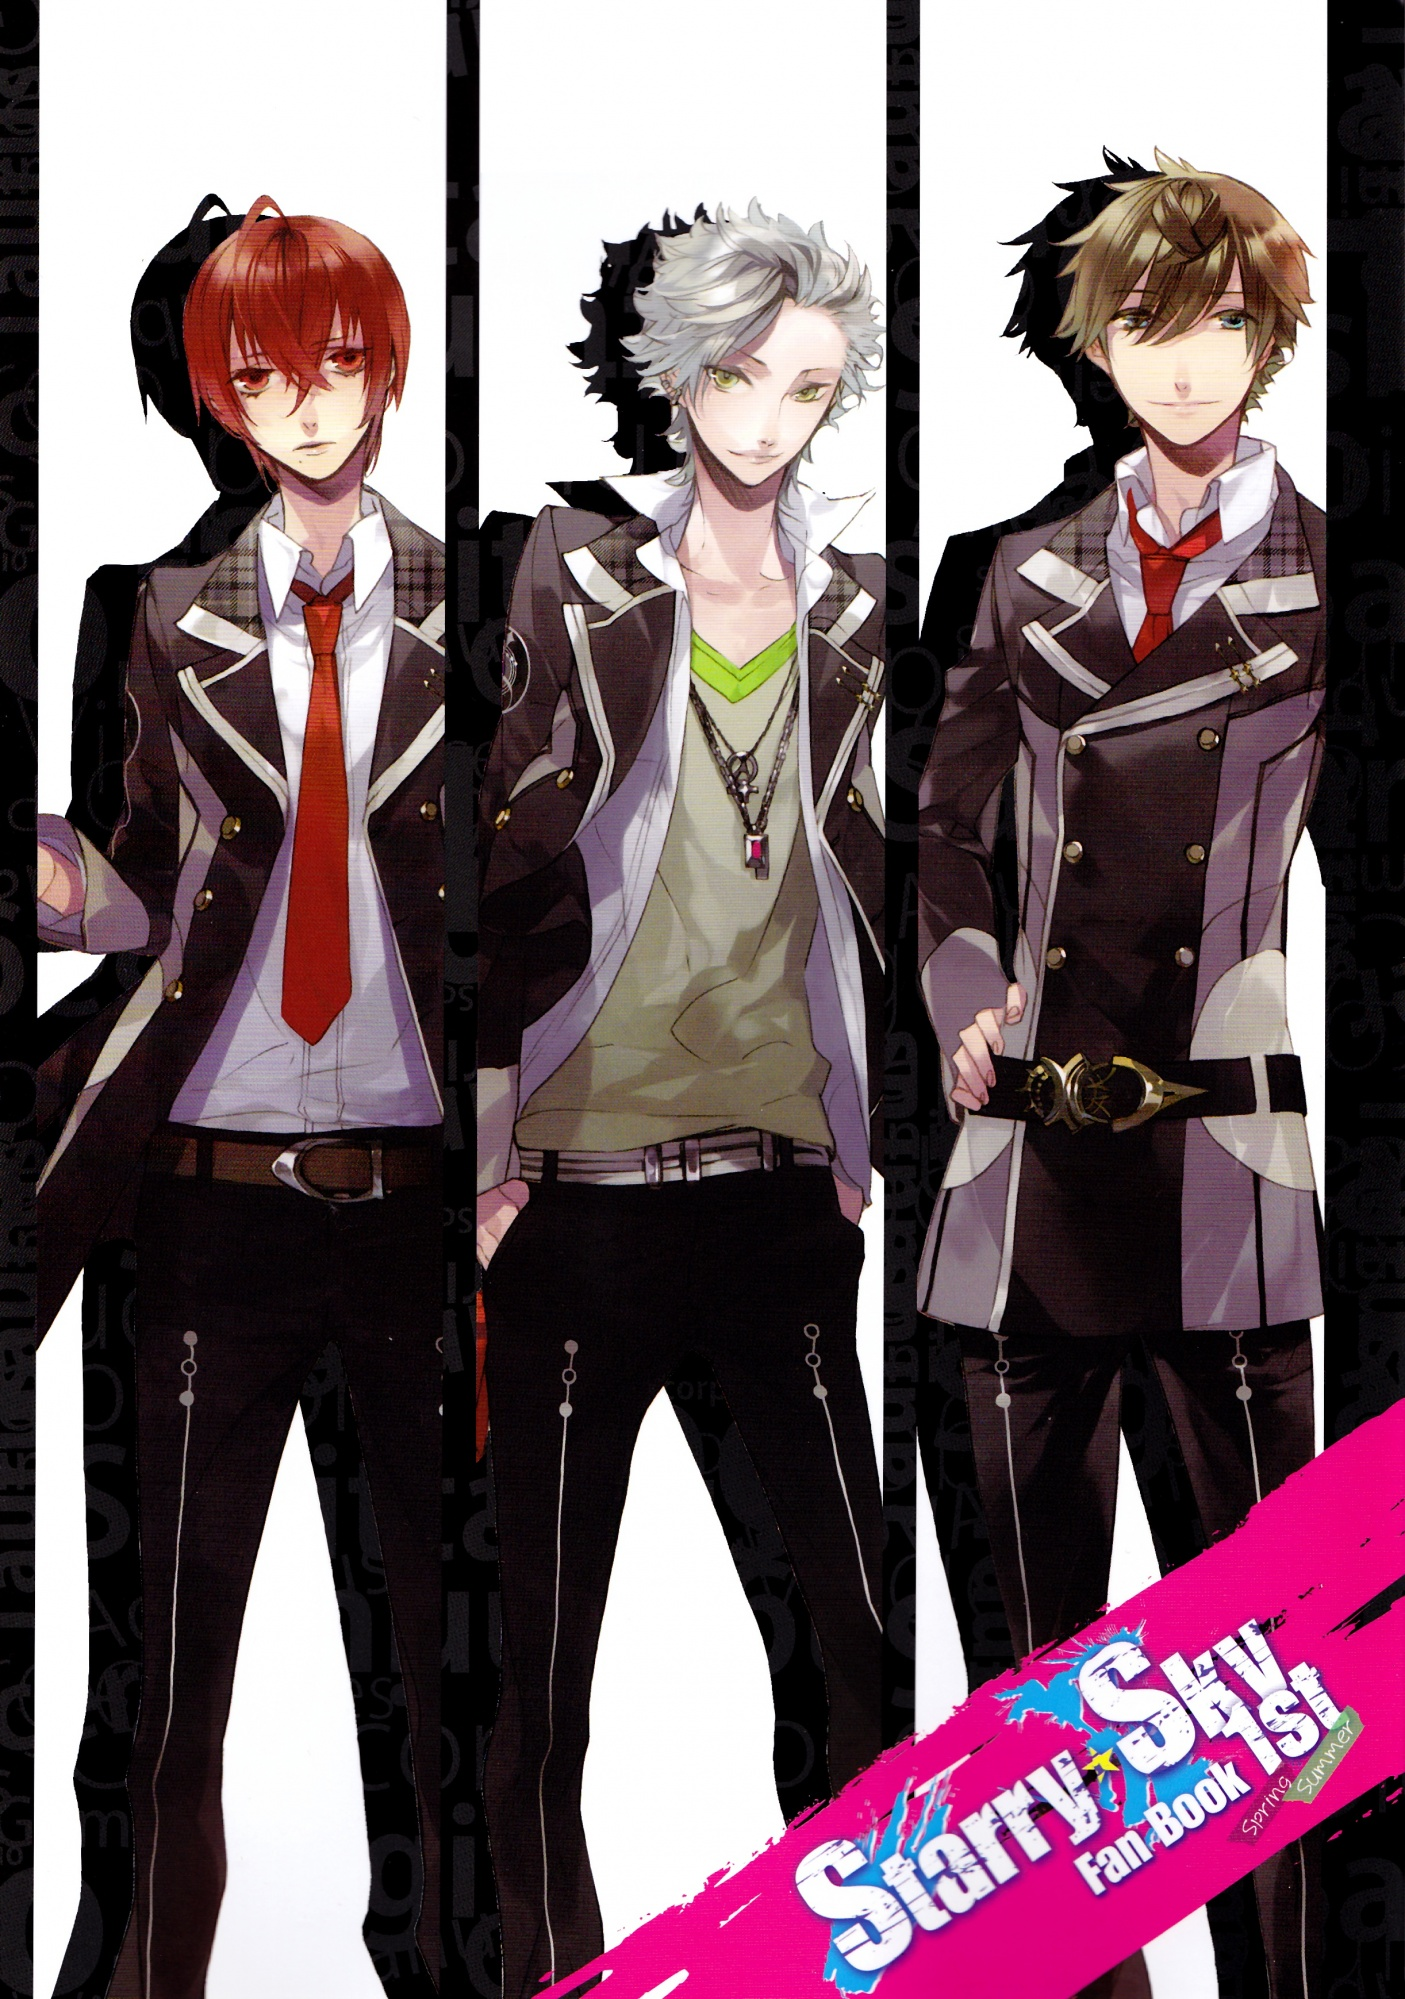 Starry sky dating sim download english free 6